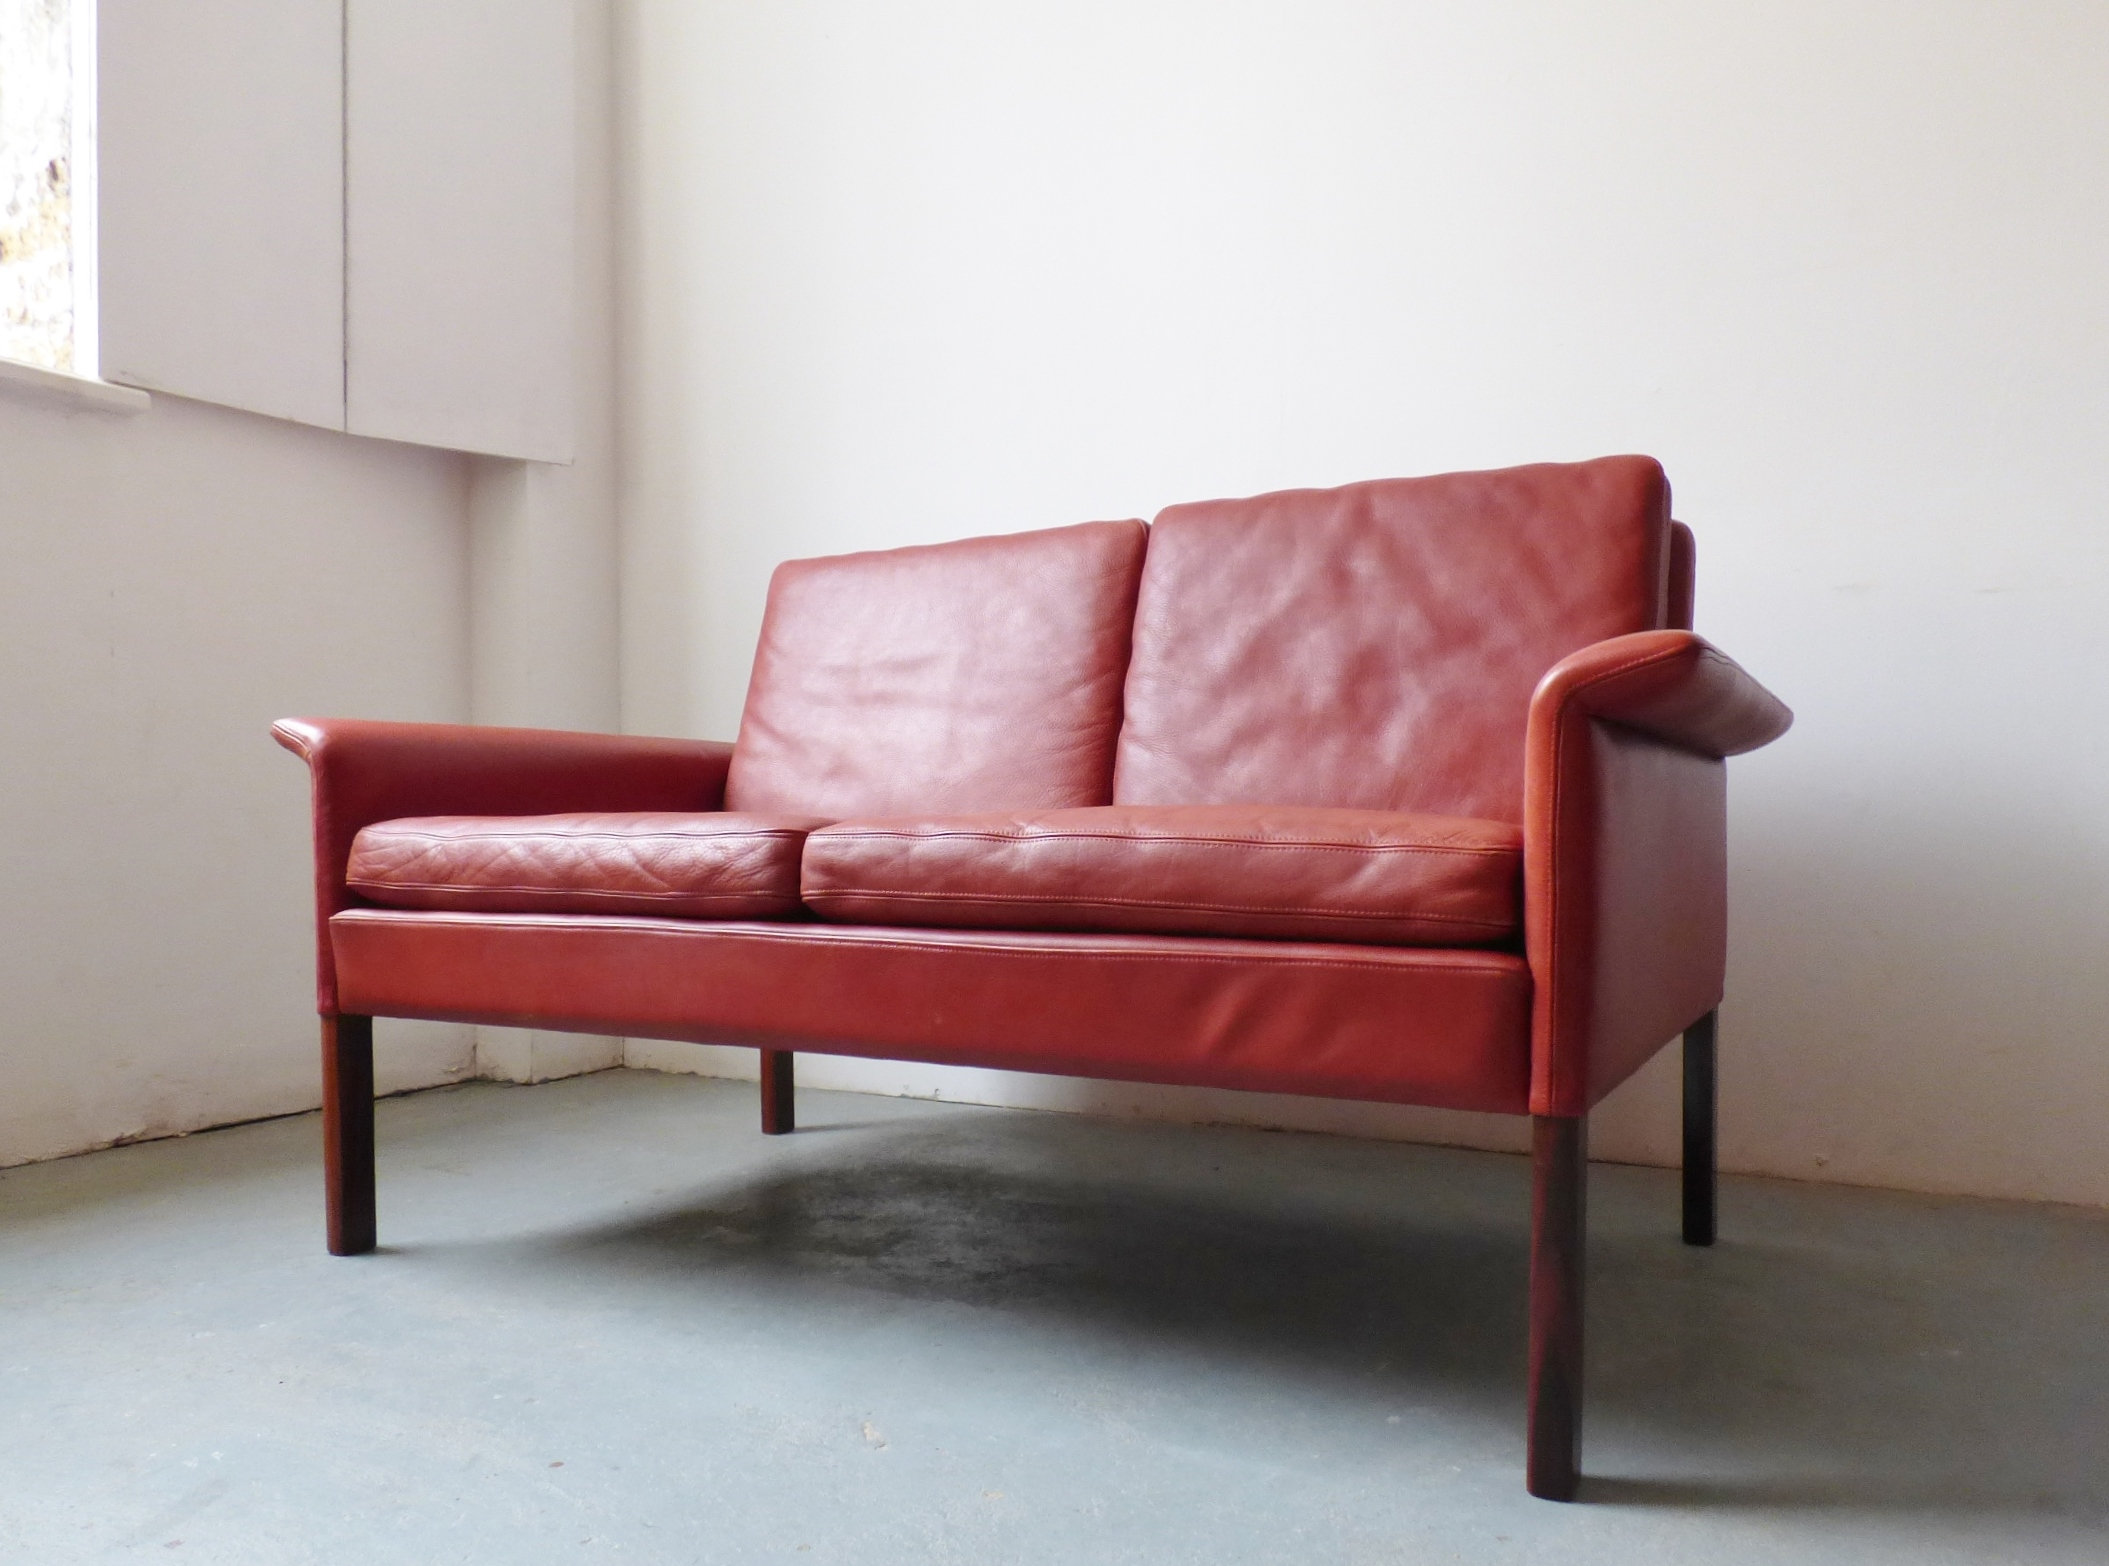 1960s red leather 2 seater sofa by Hans Olsen